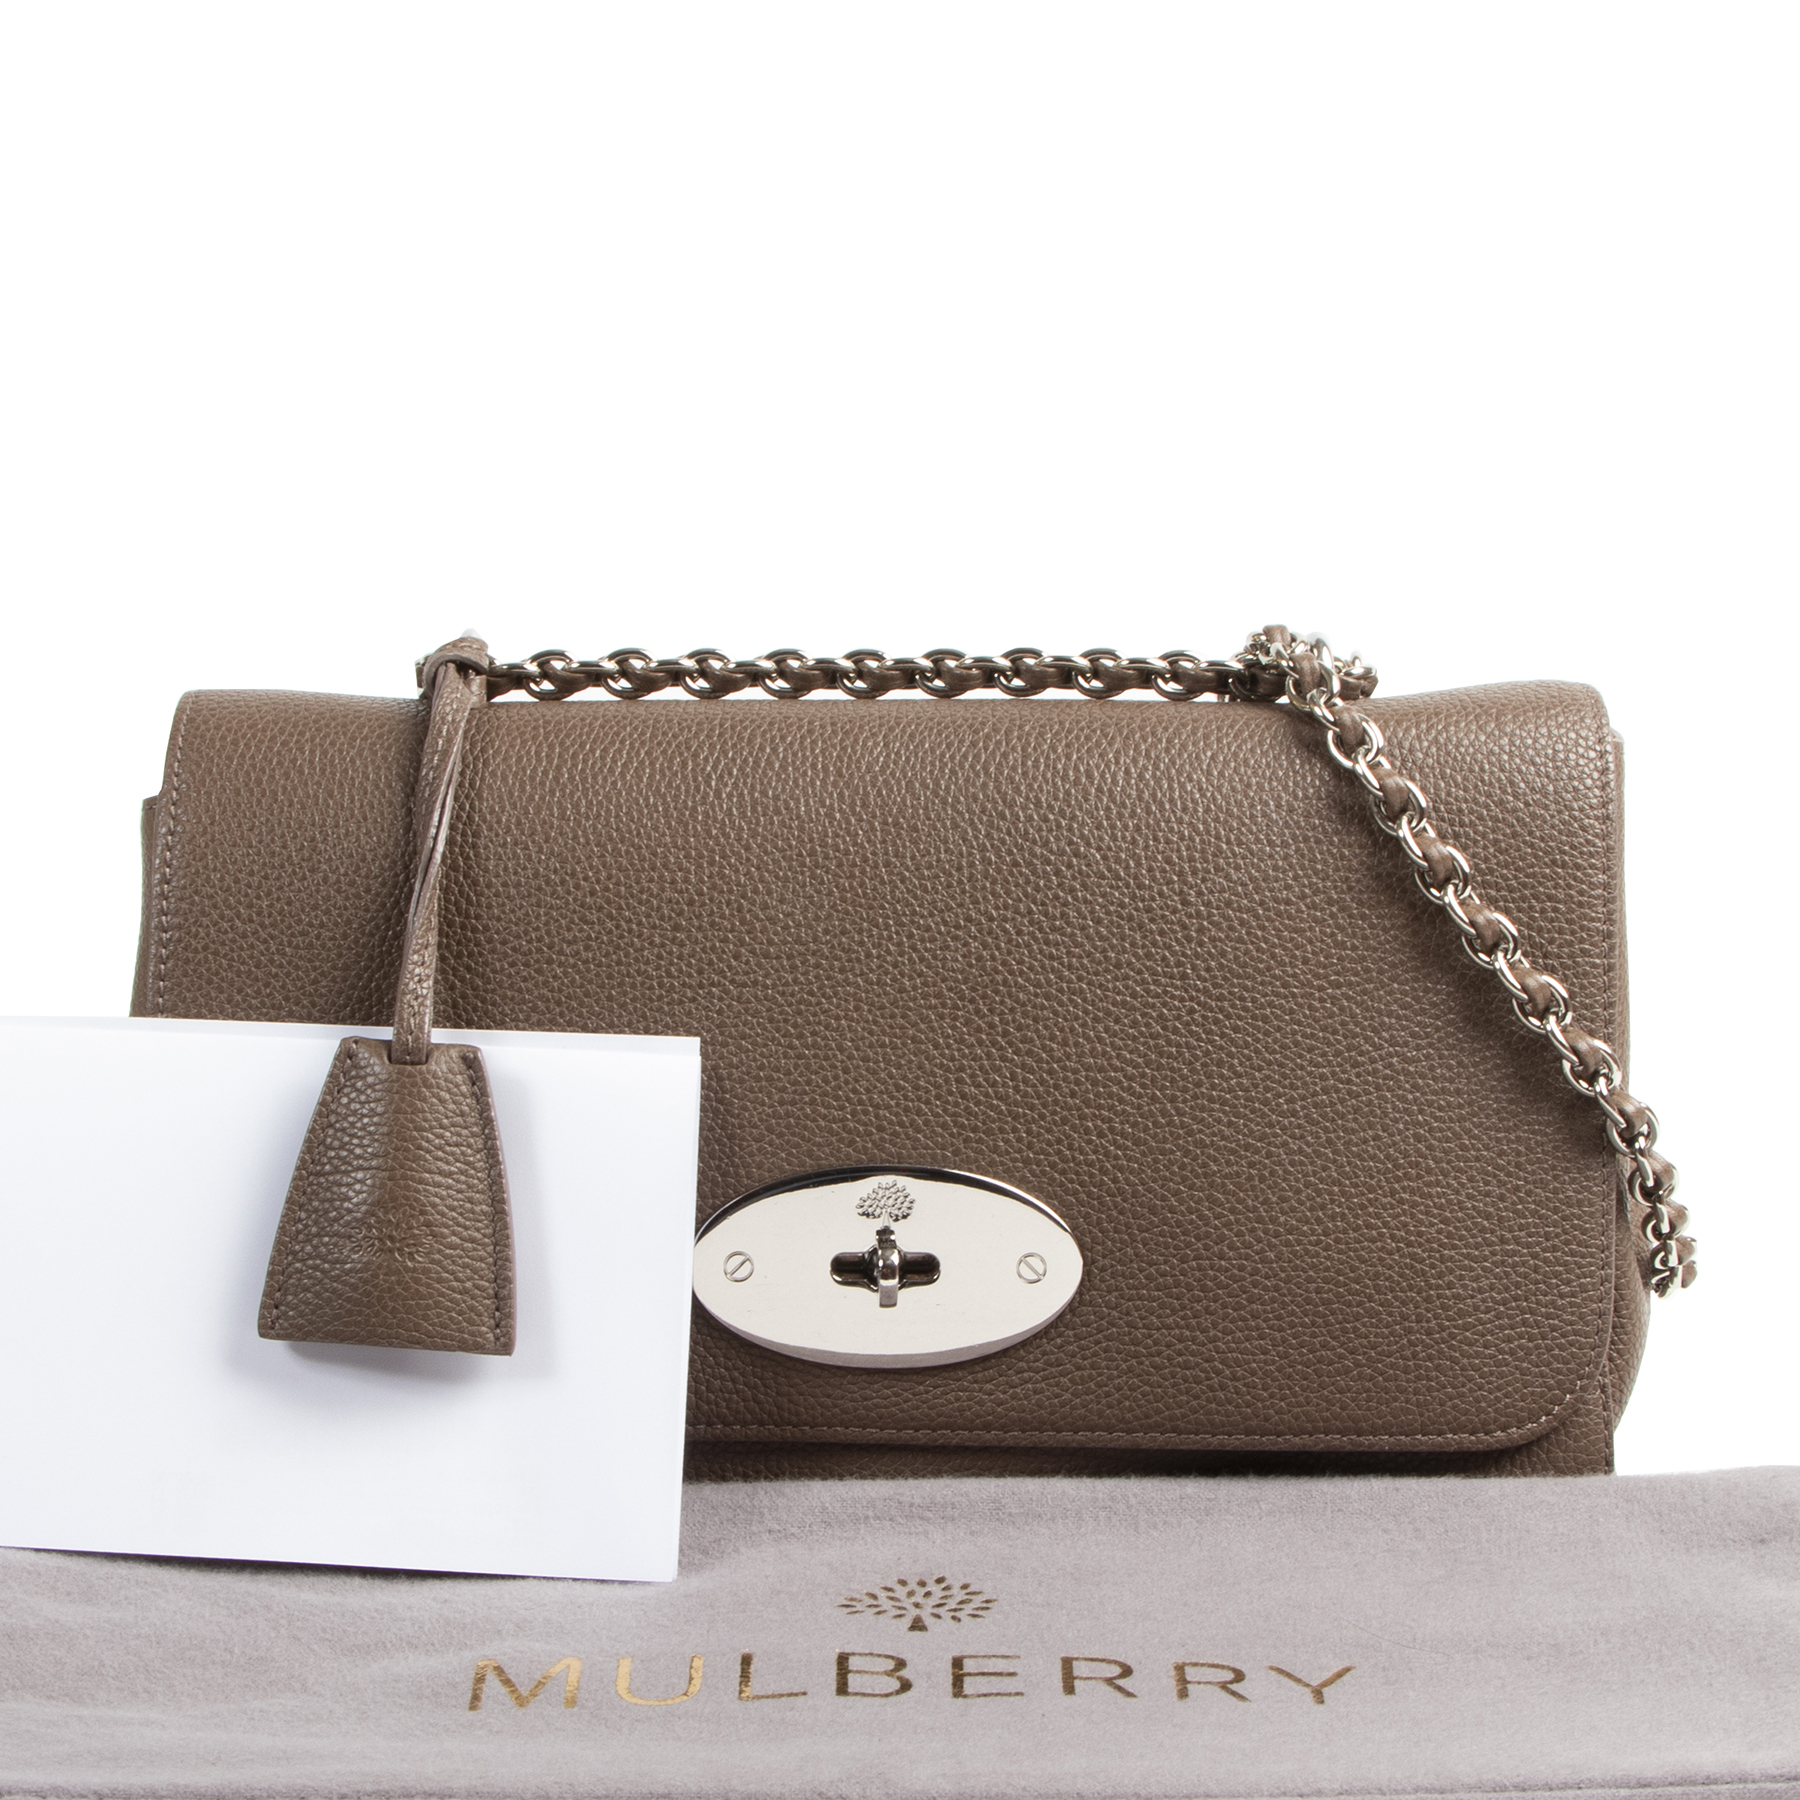 Mulberry Taupe Leather Medium Lily Shoulder Bag